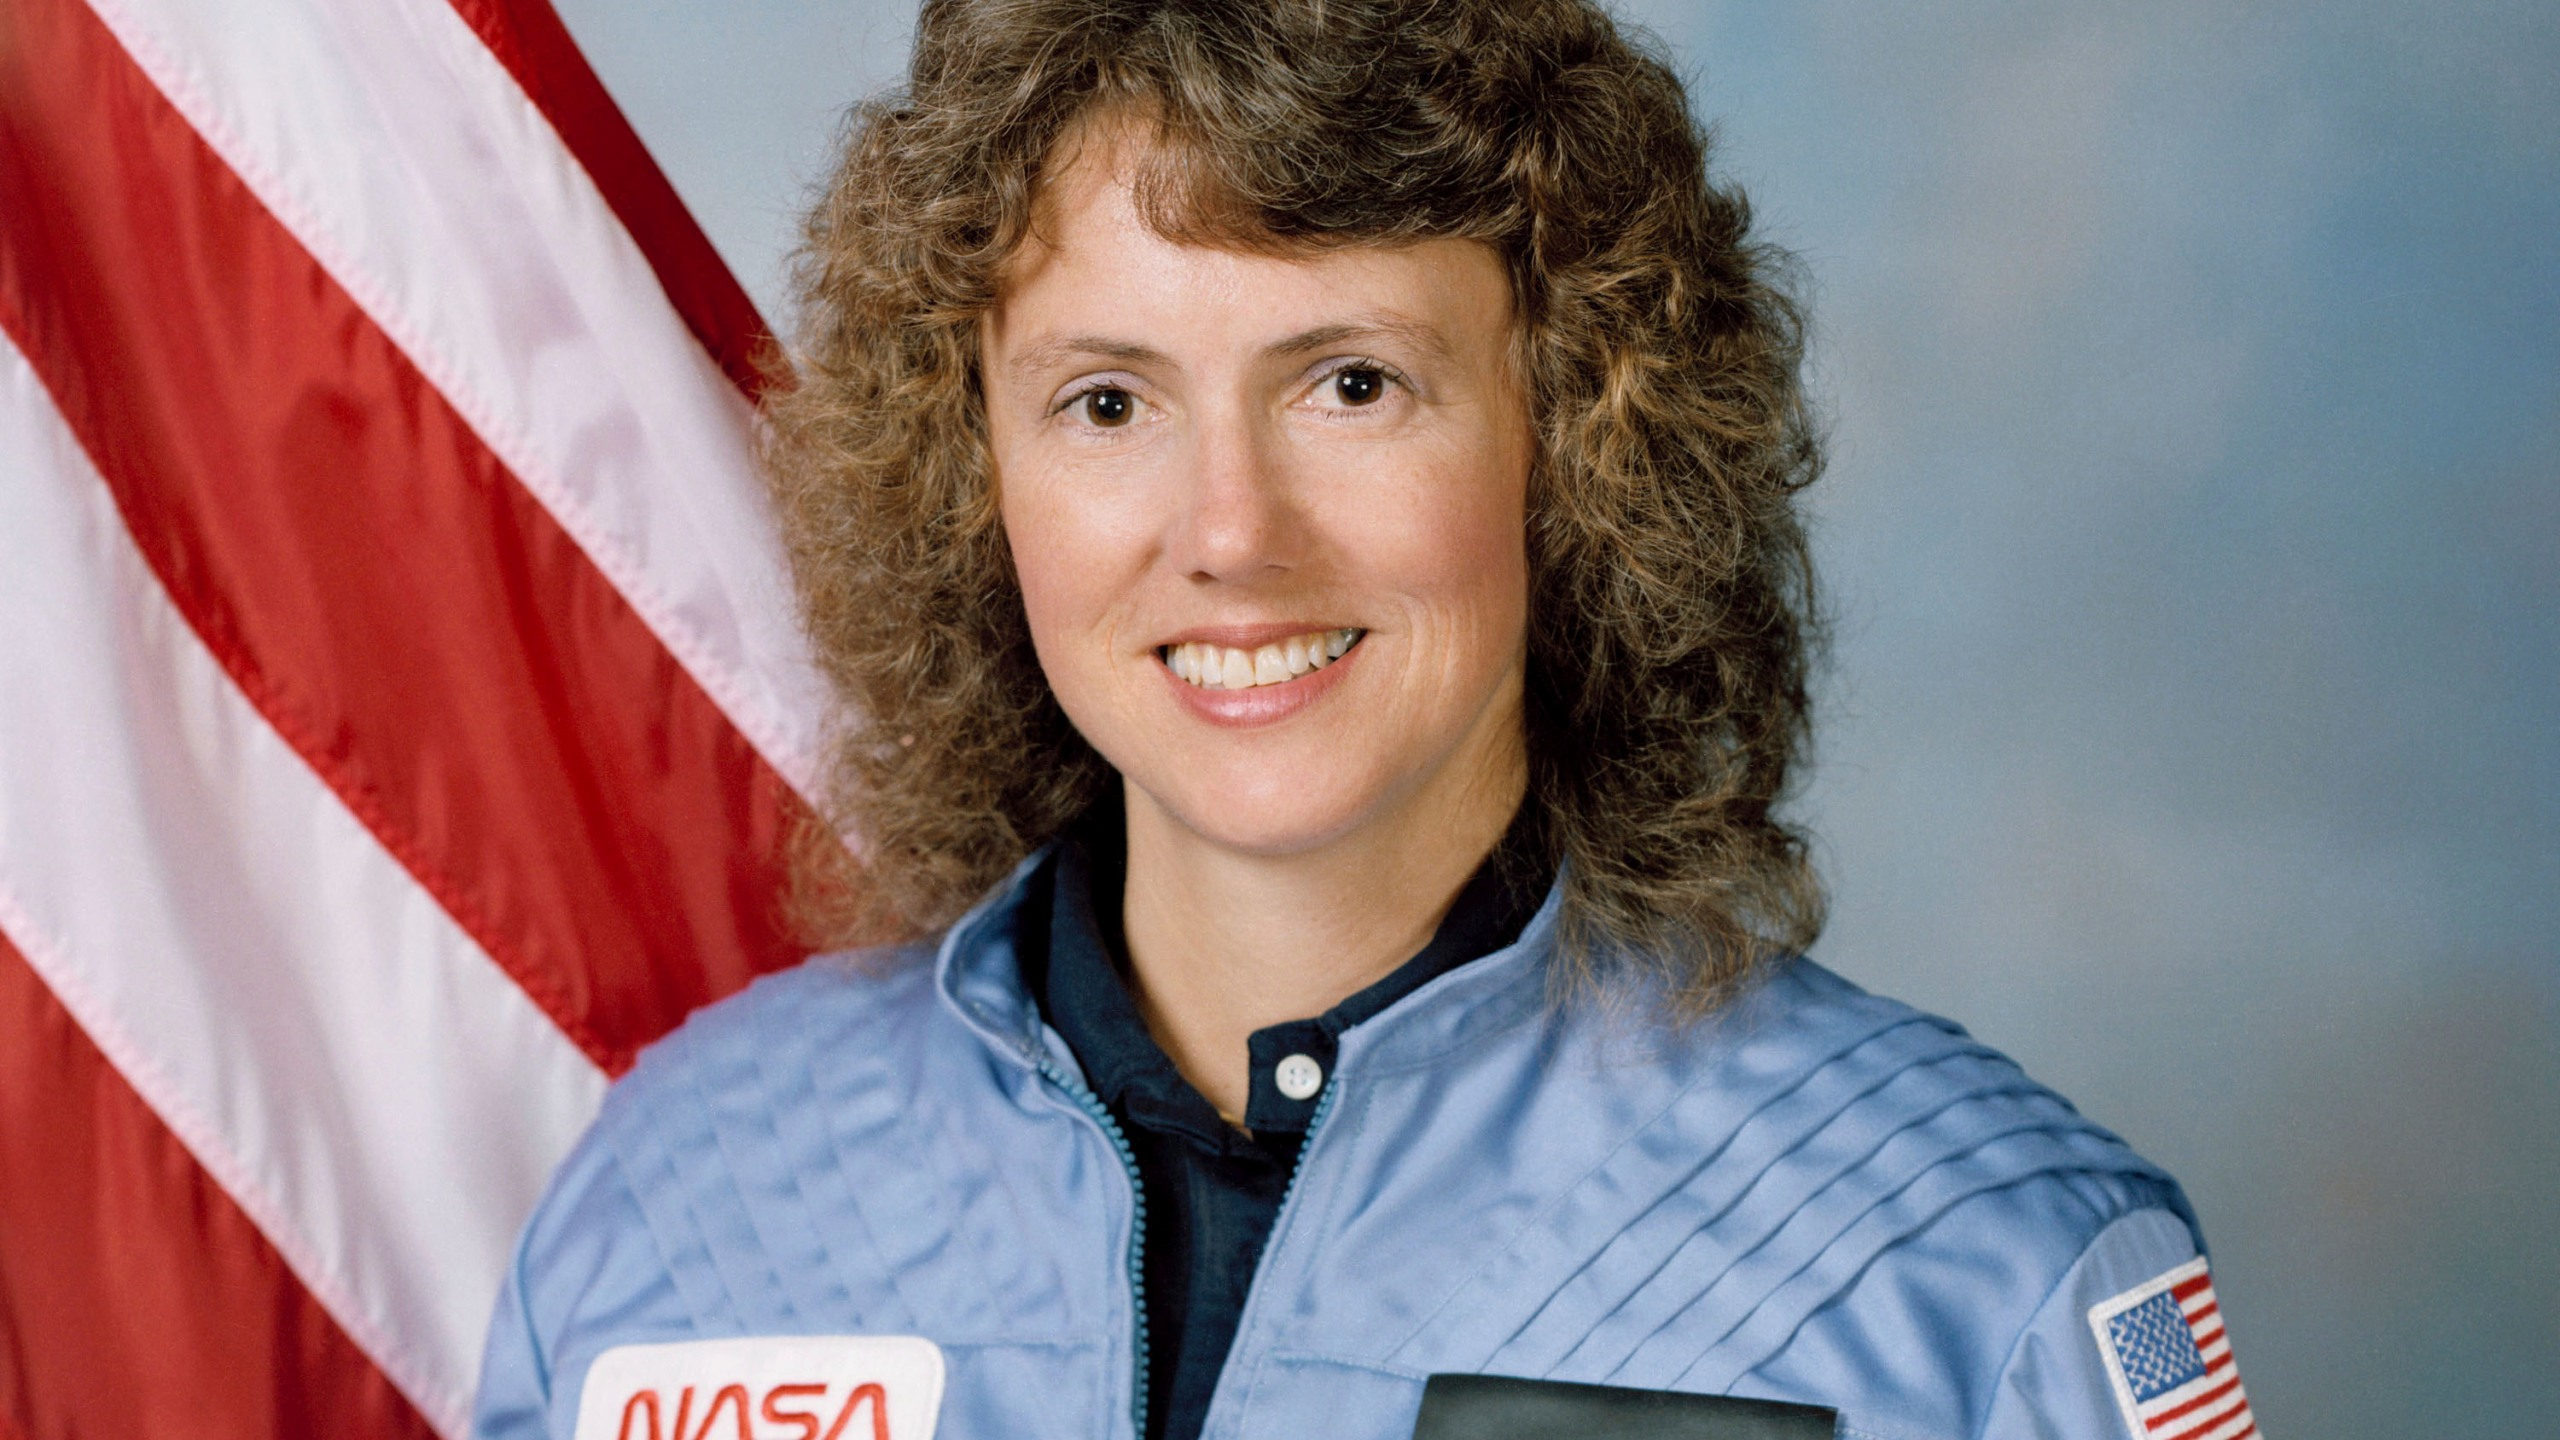 Challenger_Lost_Lessons_01009-159532.jpg59059515